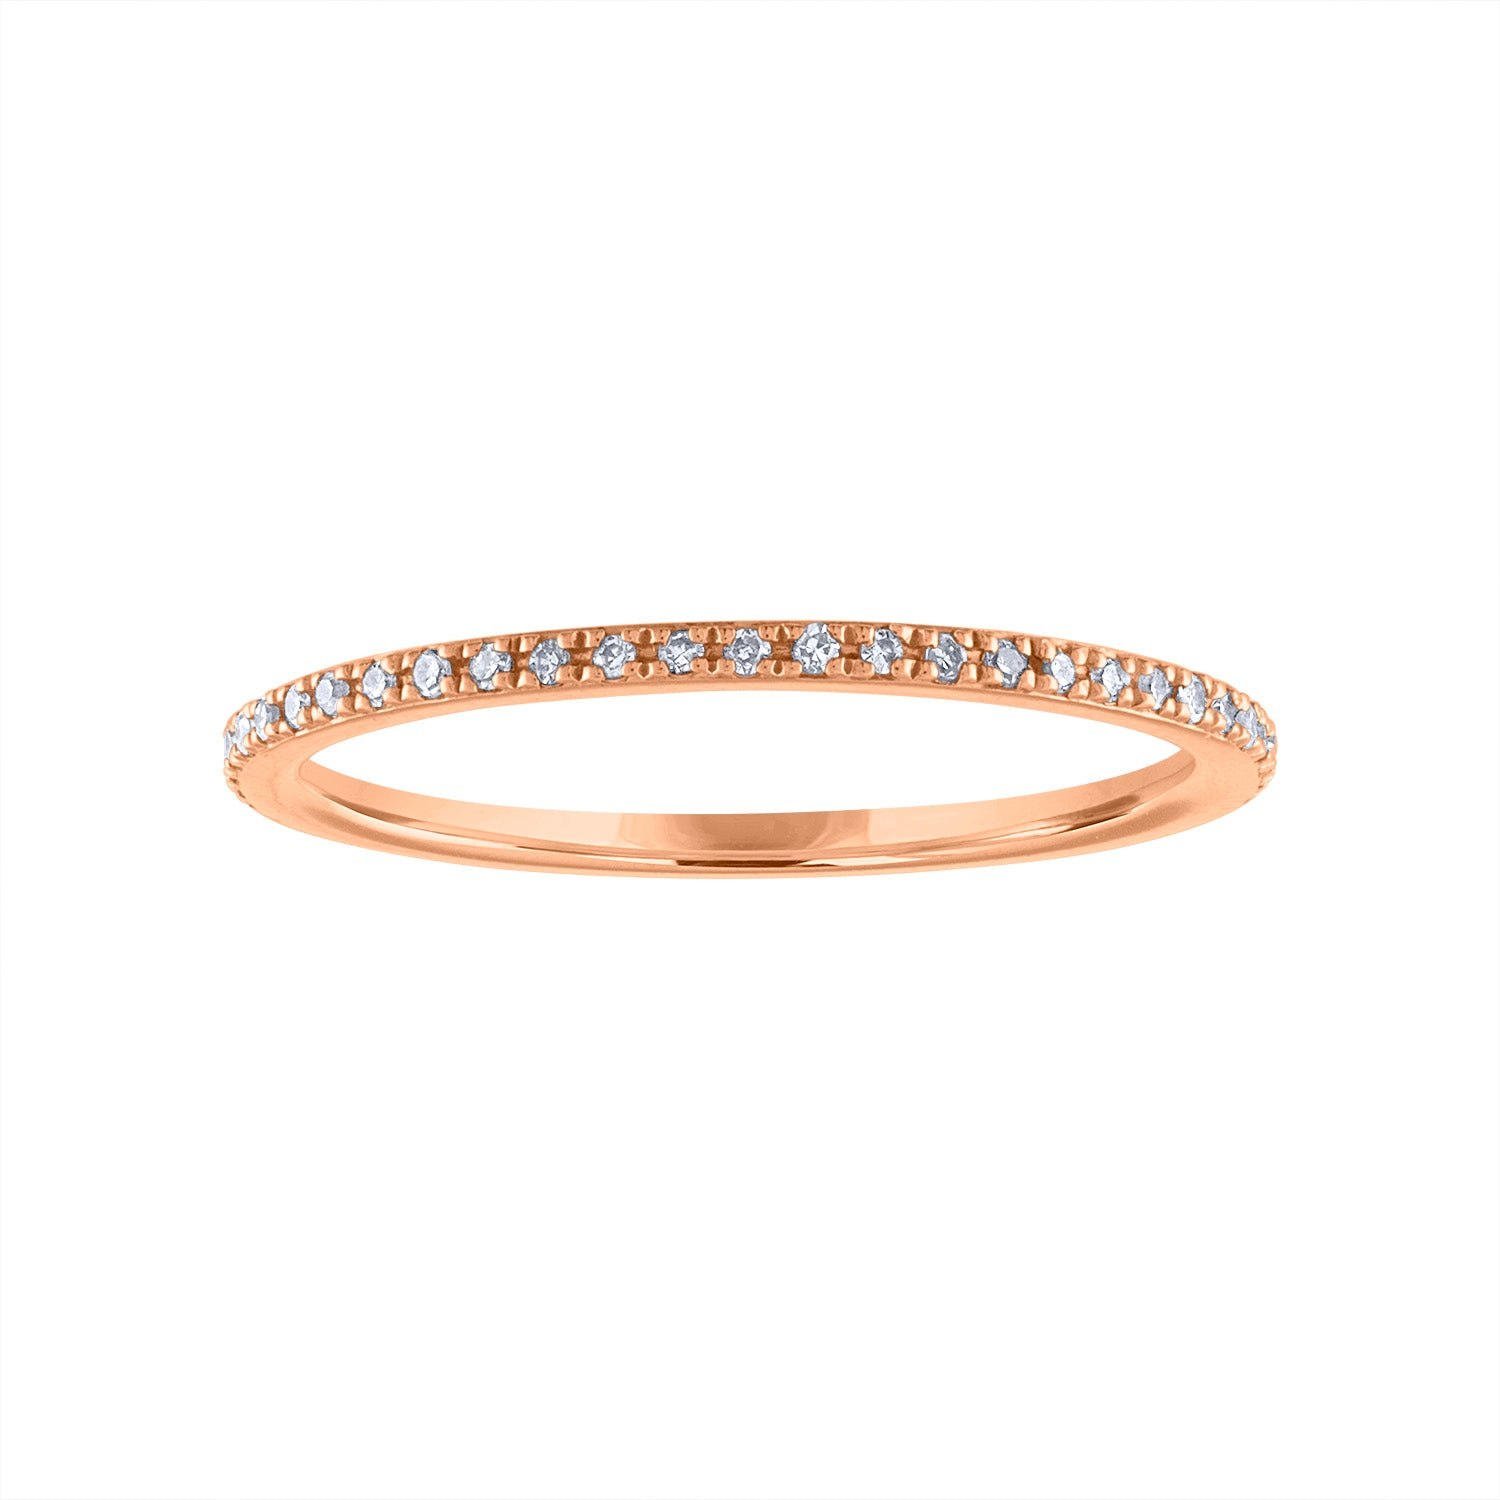 14KT GOLD PAVE DIAMOND RING GUARD